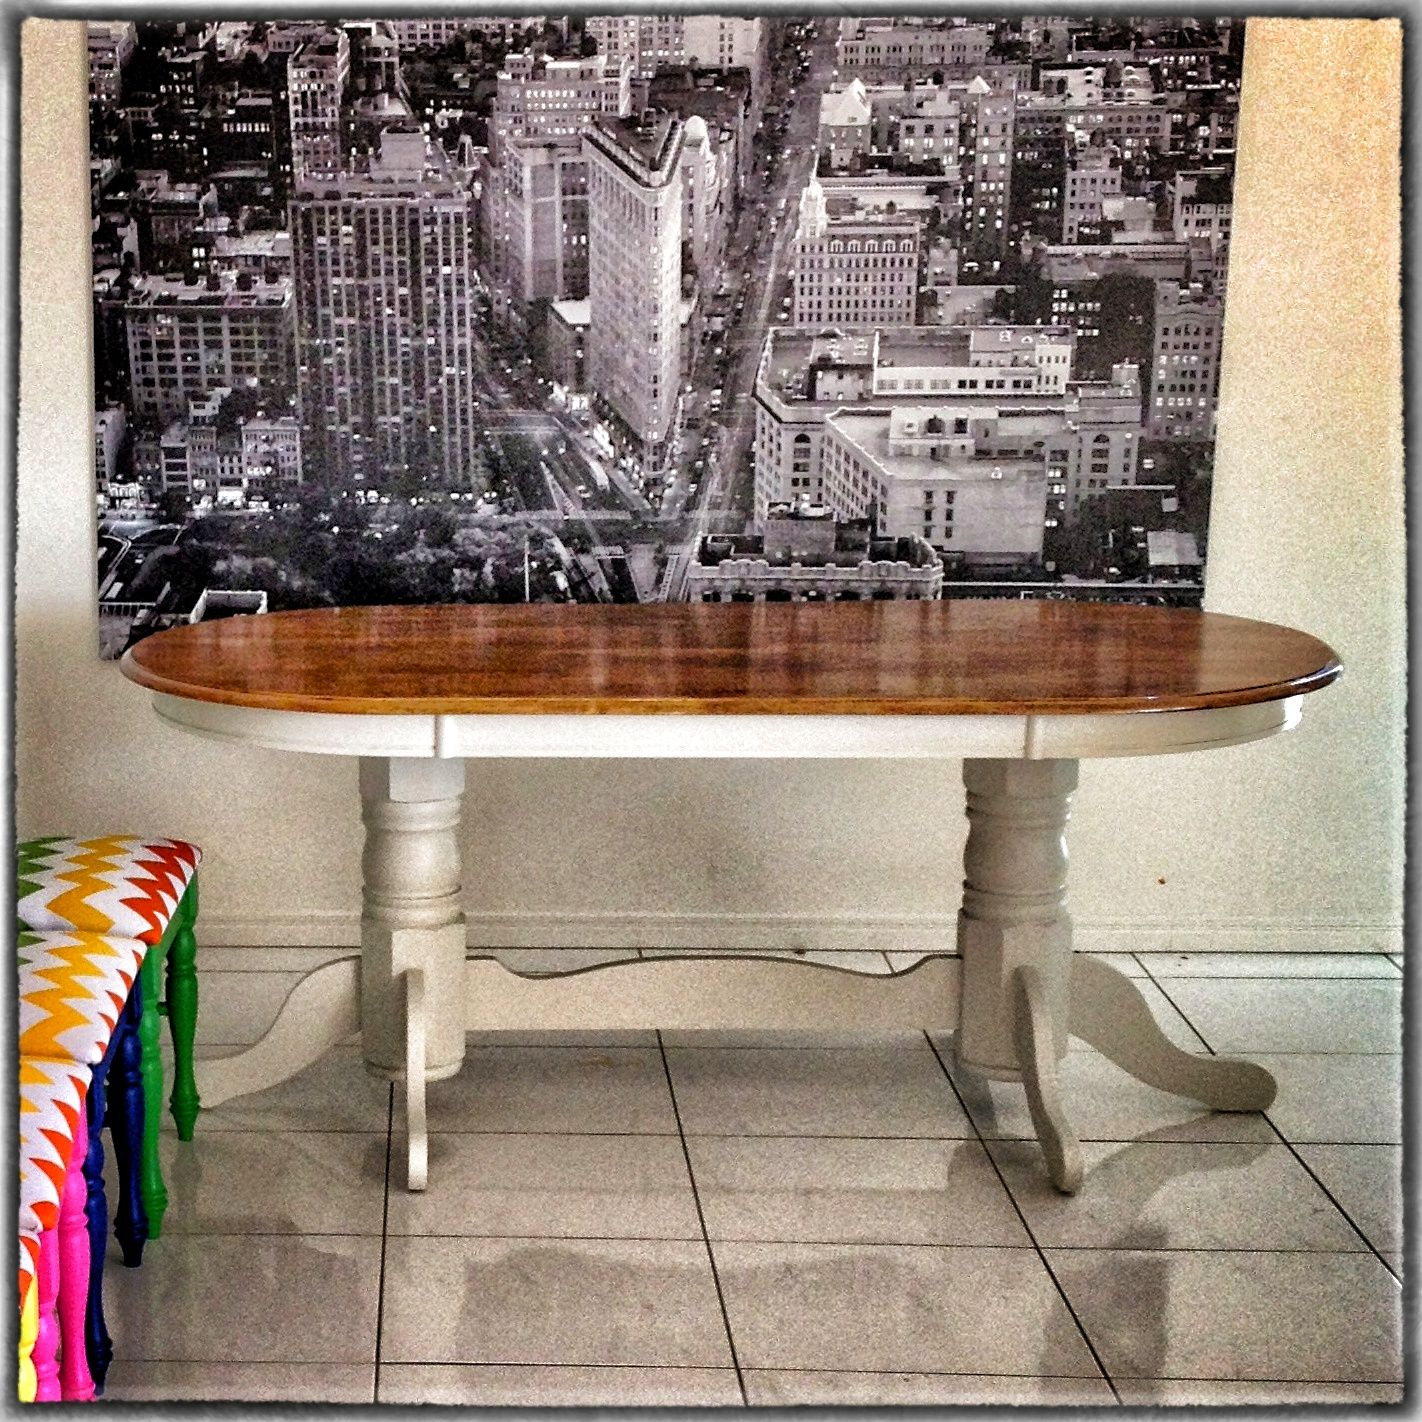 Upcycled Dining Table Walnut top with Elegant Grey base  : e29ef216590e86e655394c0e81429d10 from www.pinterest.com size 1422 x 1422 jpeg 973kB